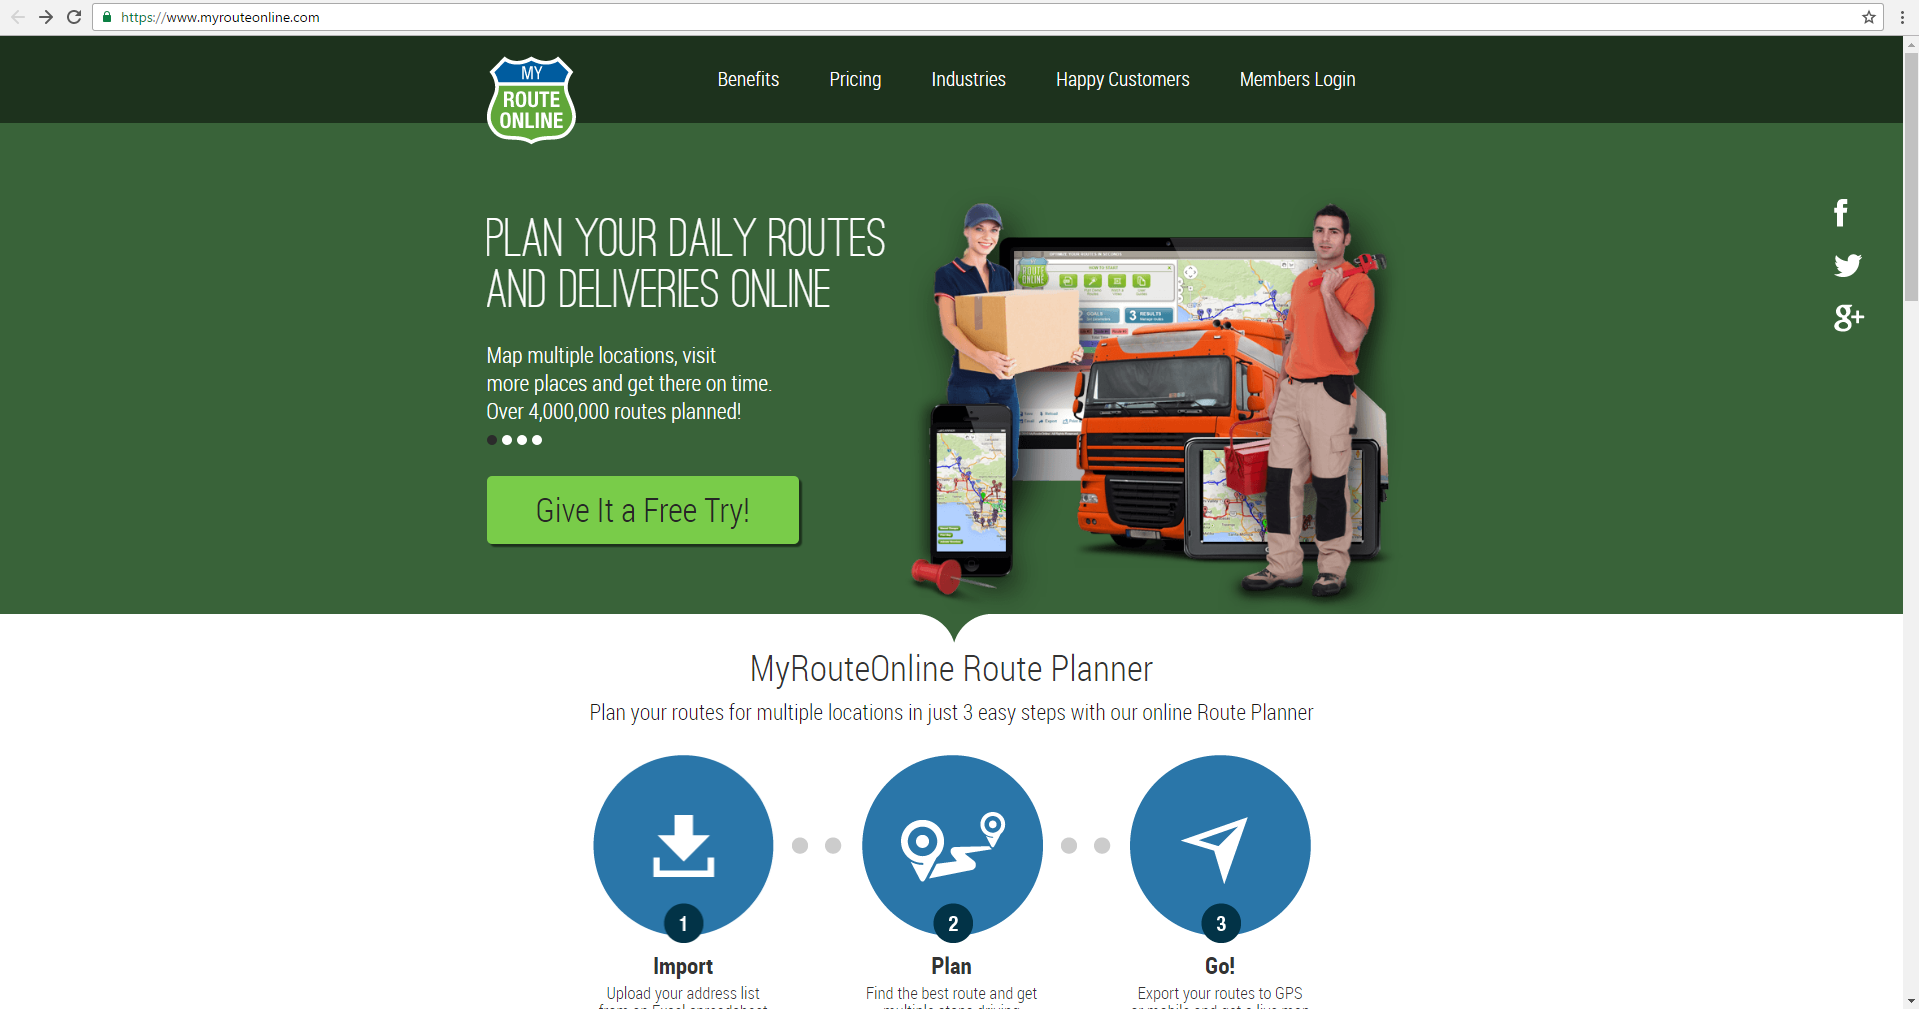 Change your vehicle route planning from MyRouteOnline to Route4Me